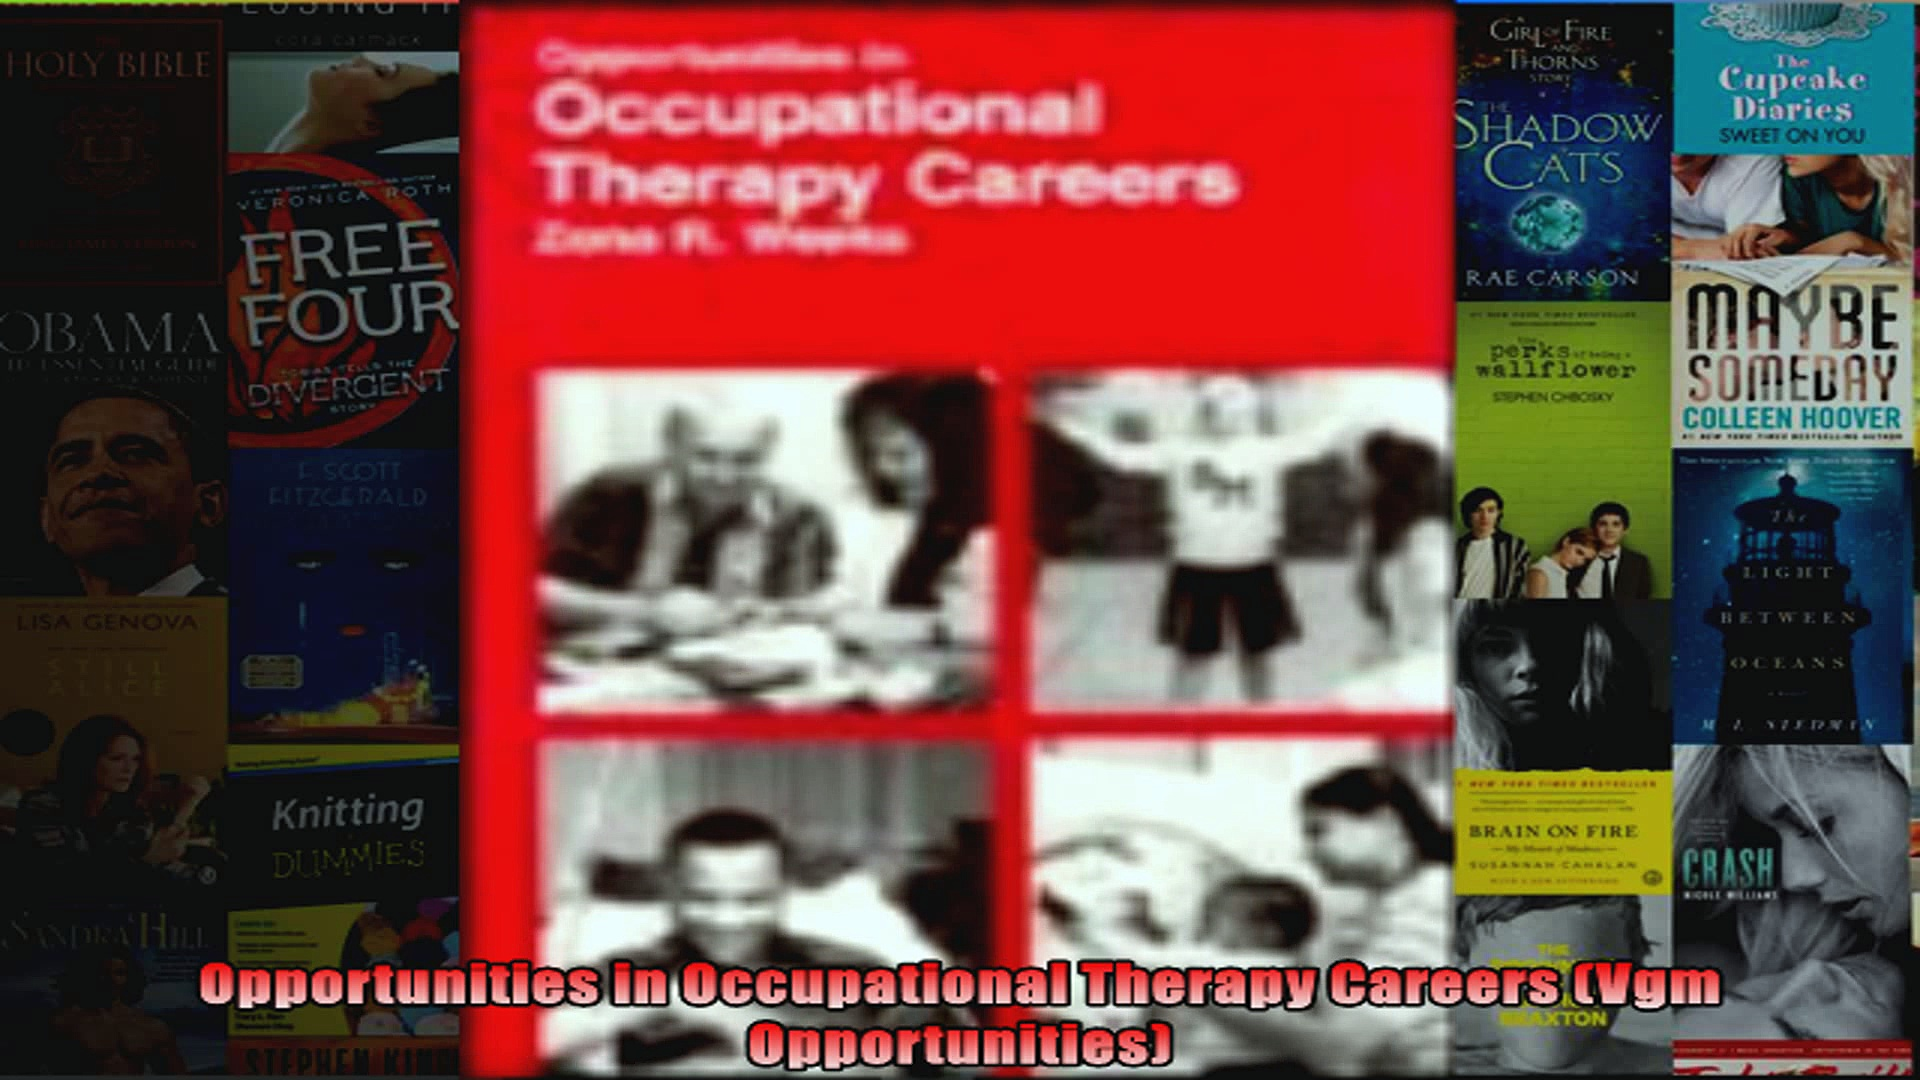 Opportunities in Occupational Therapy Careers Vgm Opportunities